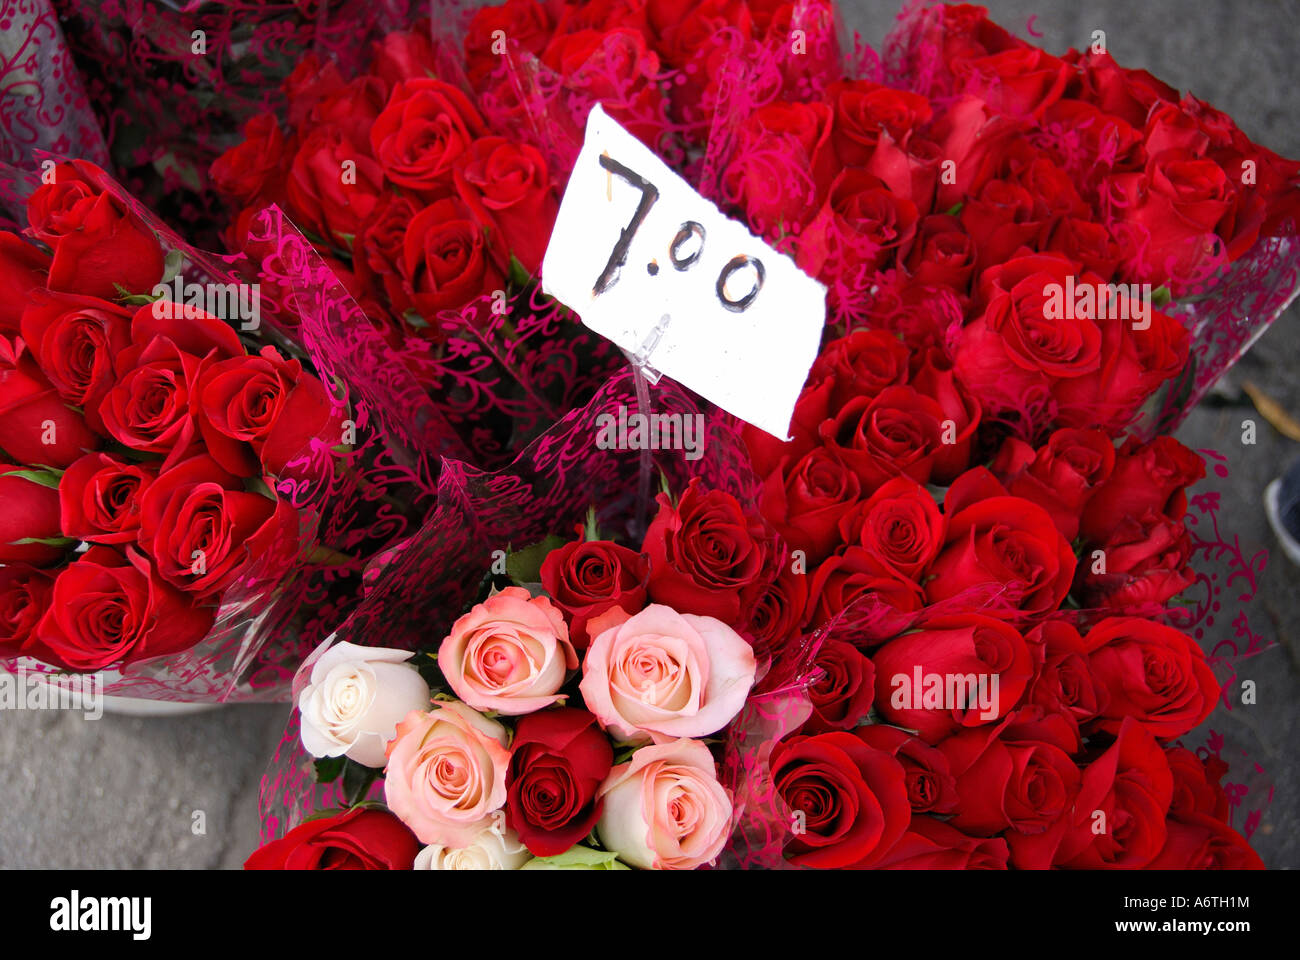 Bouquets Of Red And Pink Roses Price Sign Flower Market Stock